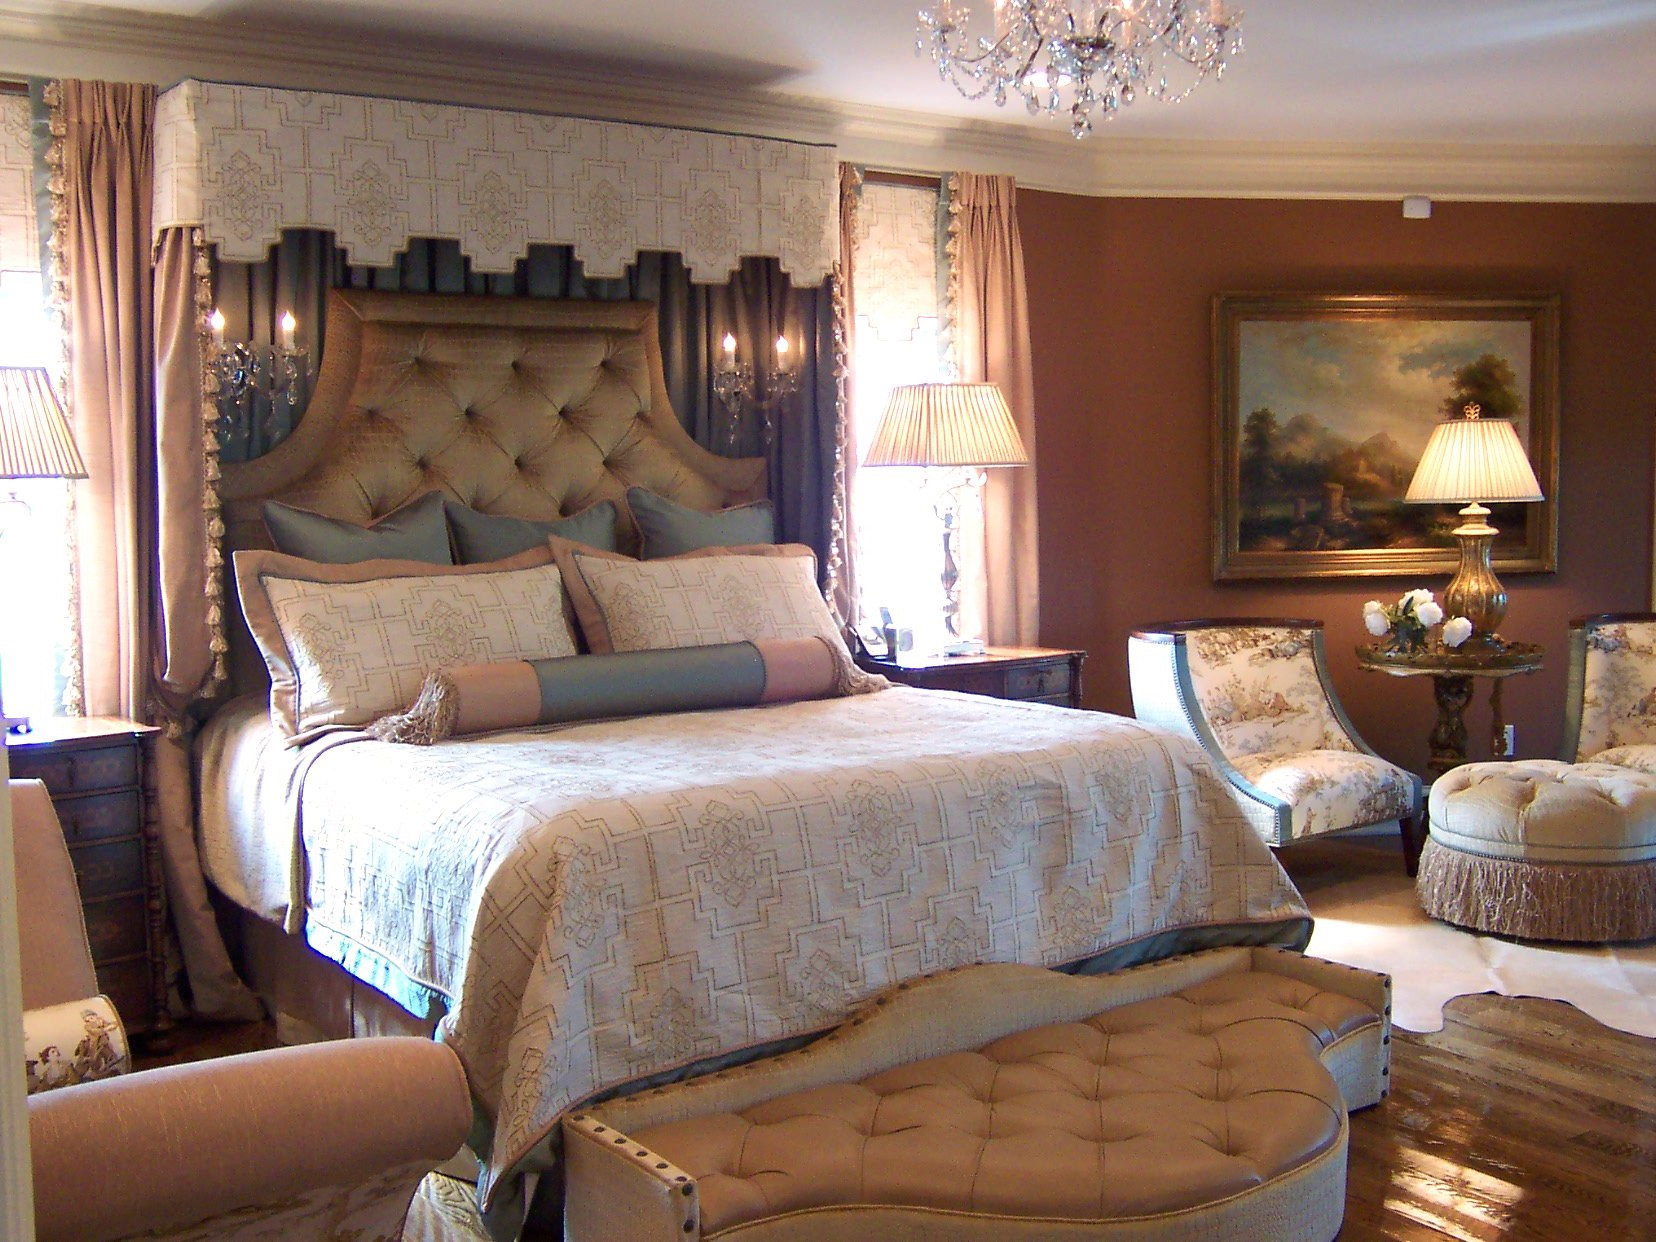 30 Victorian Bedroom Interior Design And Ideas 17850